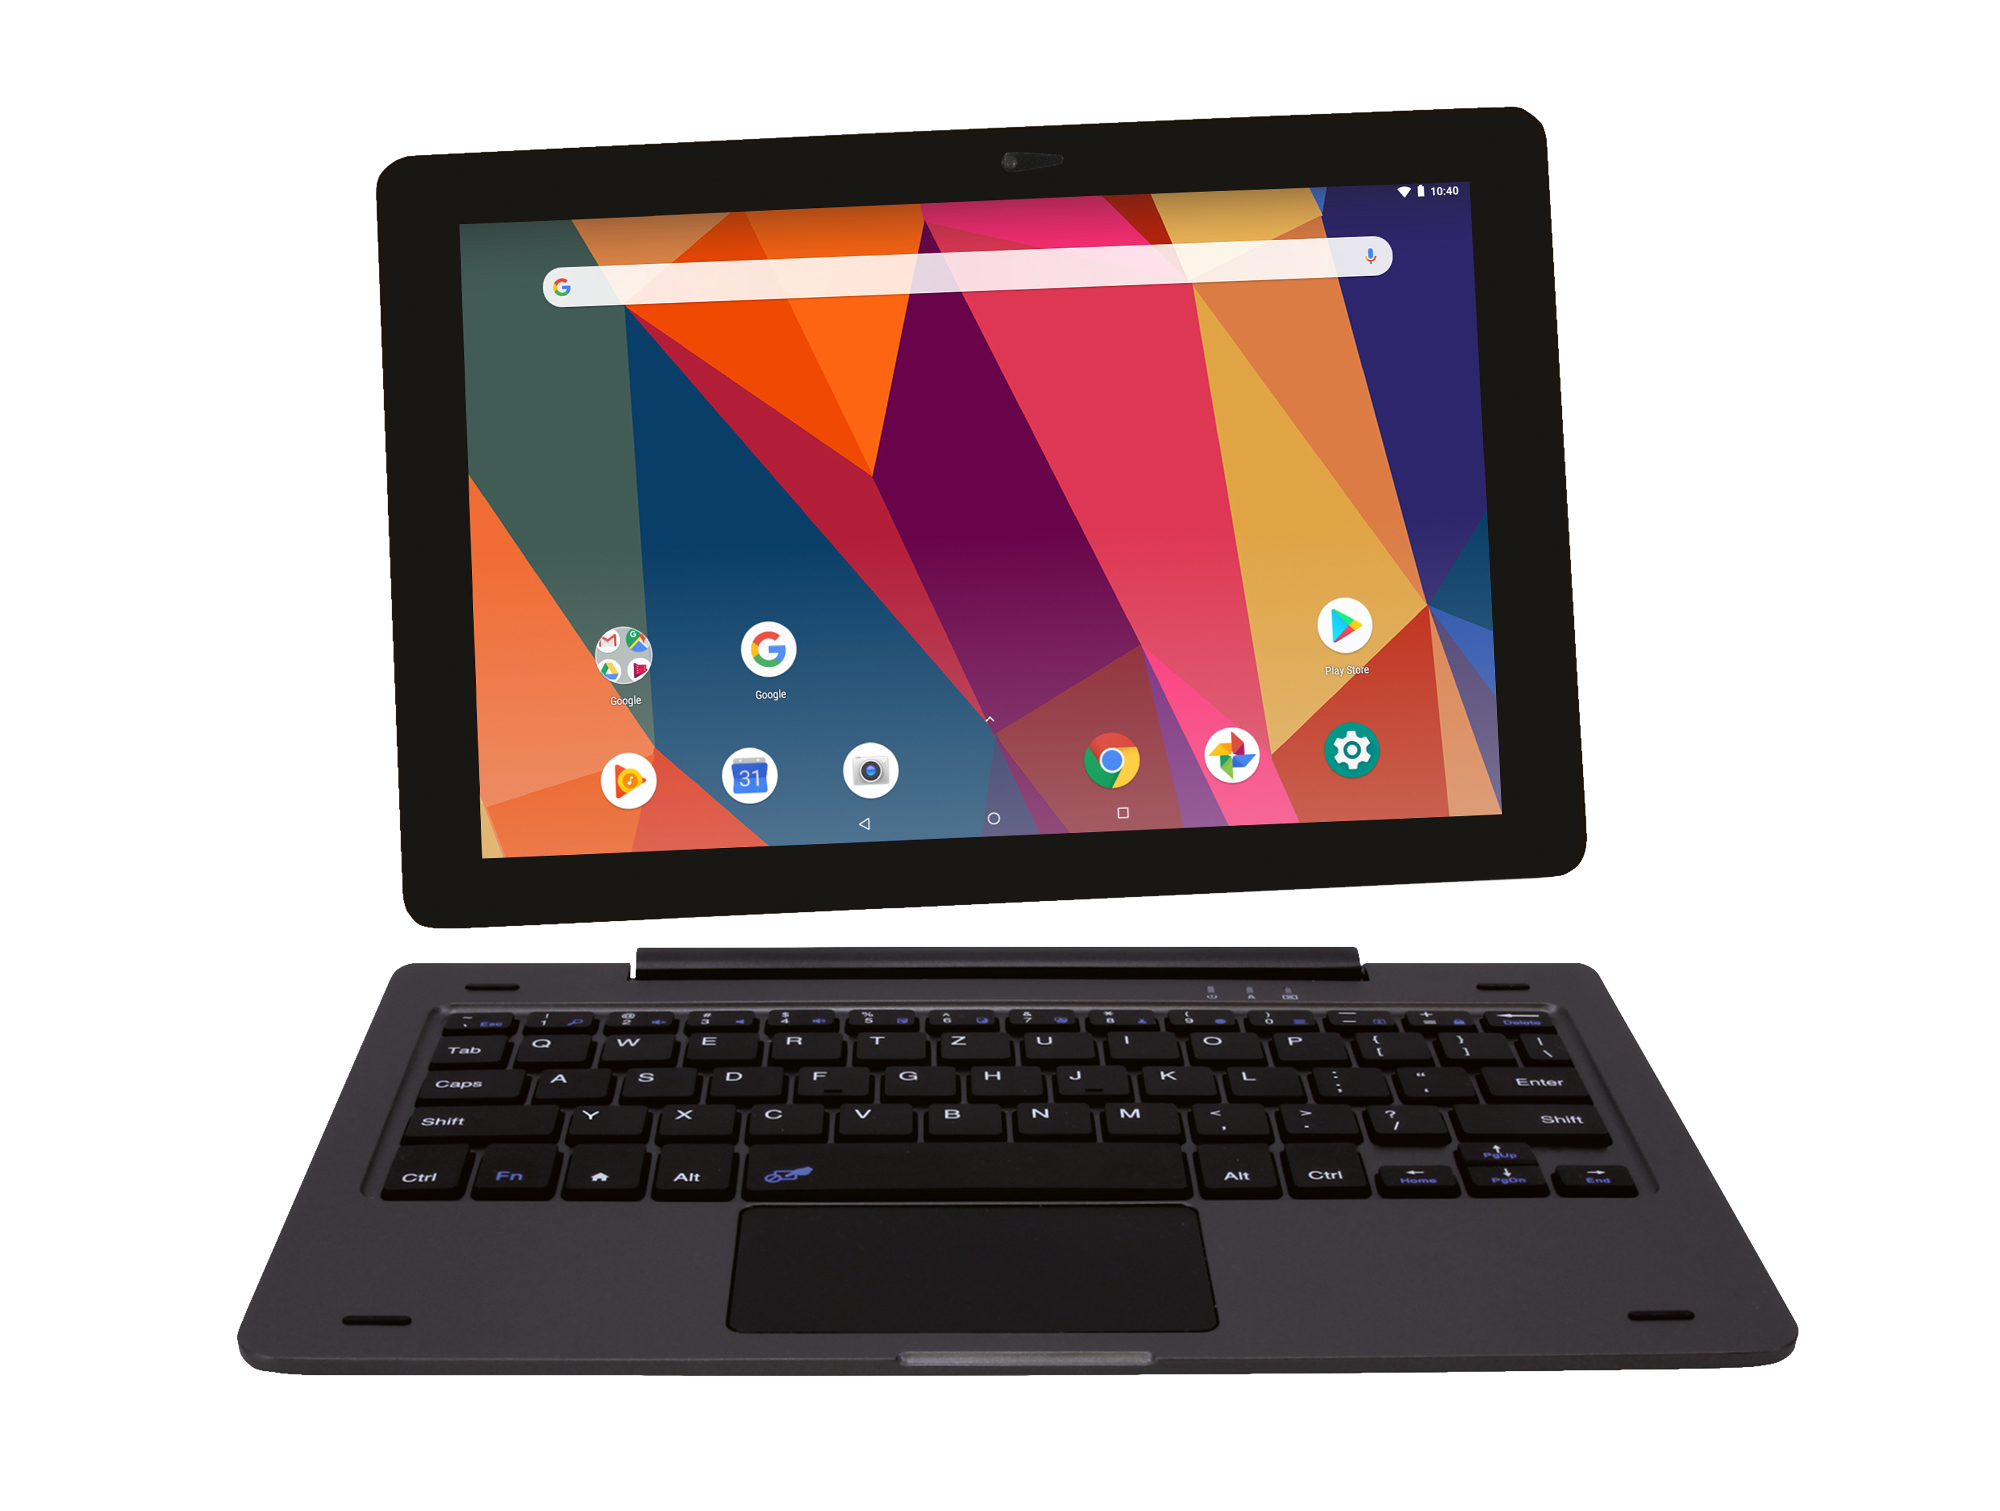 Captiva PAD 10 2-in-1 Android 8.1